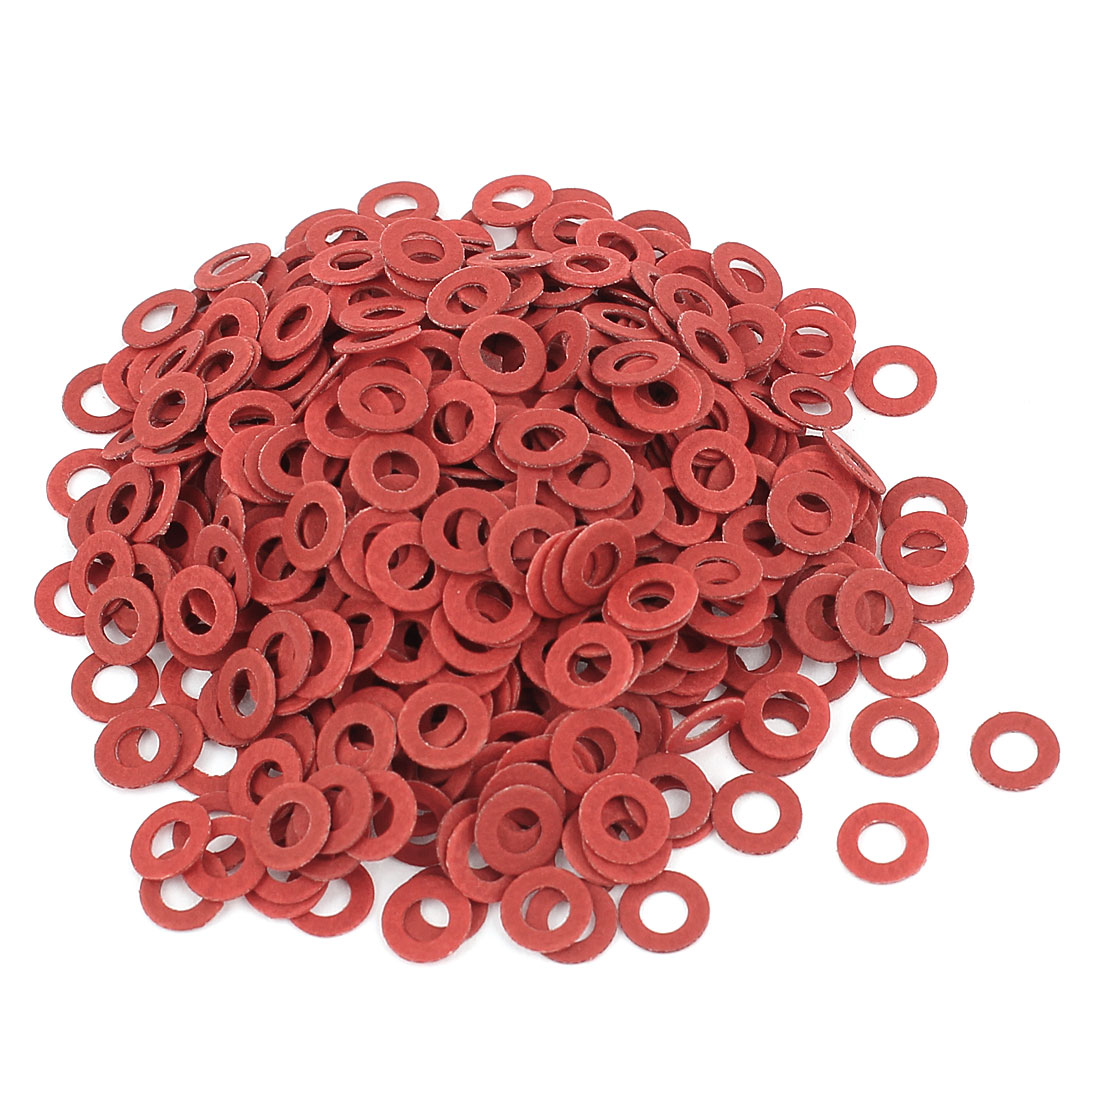 Fiber Flat Insulating Washer Ring 3mmx6mmx0.5mm 500Pcs Red for Screws